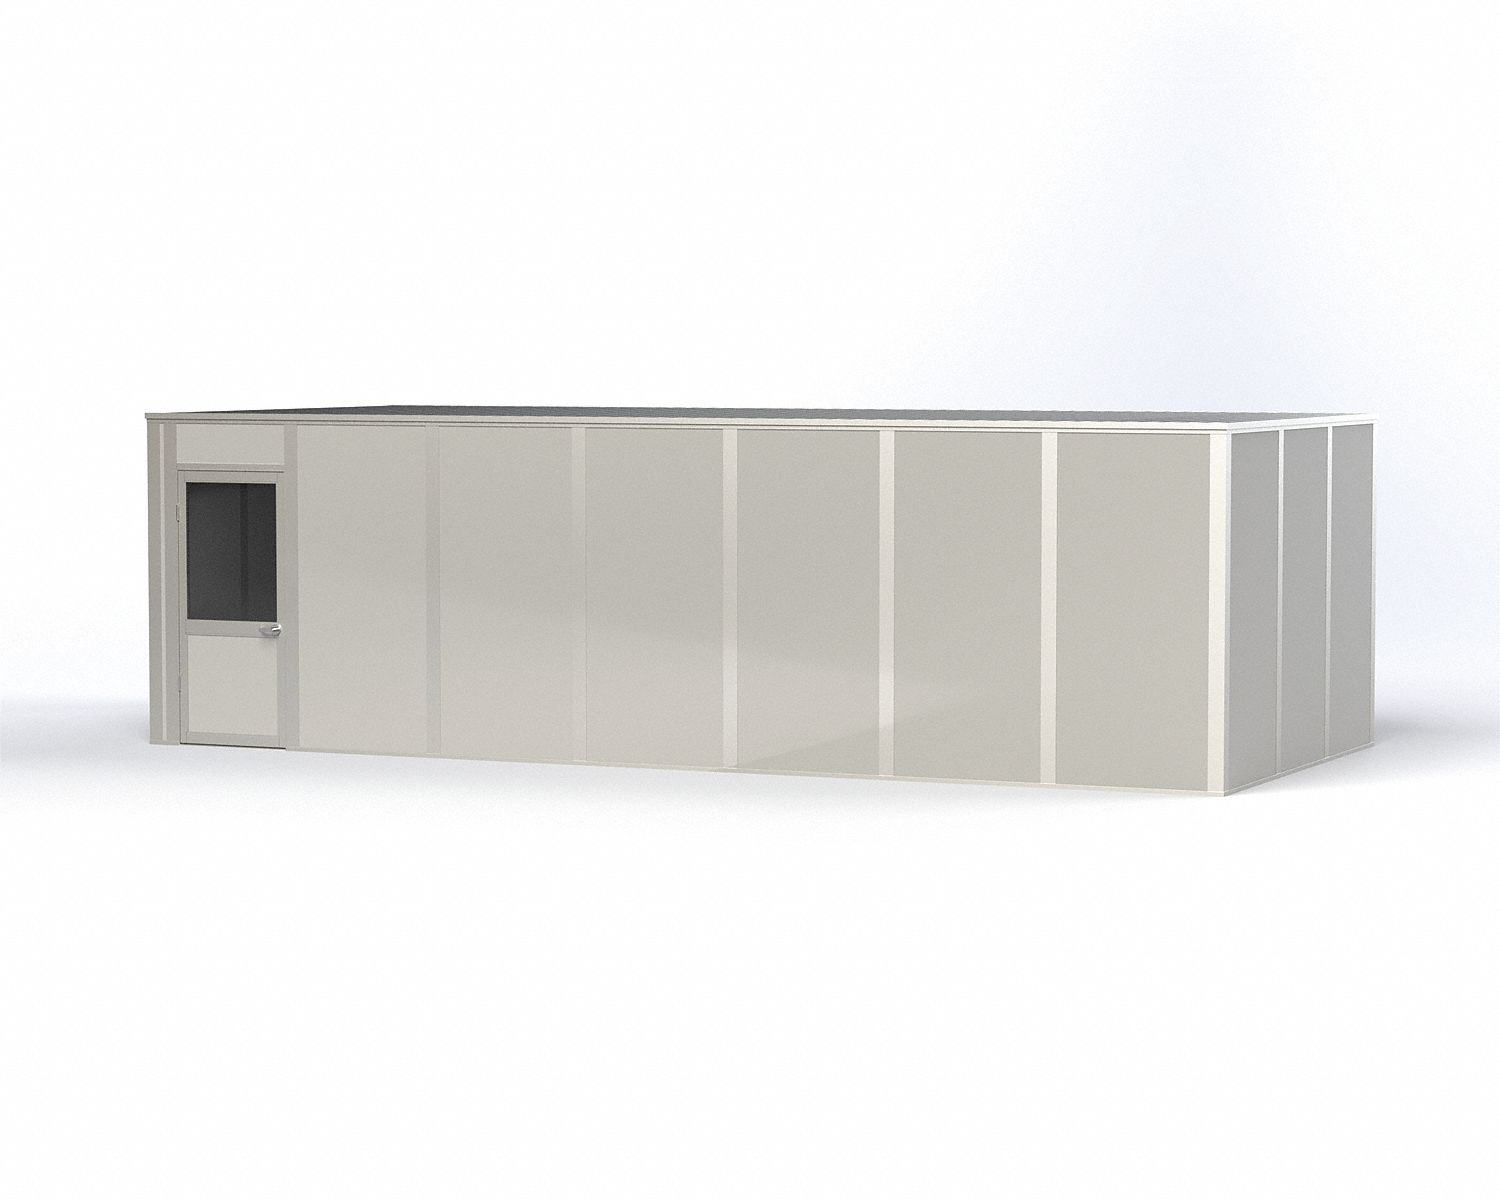 Modular In-Plant Office,  4-Wall,  28 ft. Width,  12 ft. Depth,  8 ft. Height